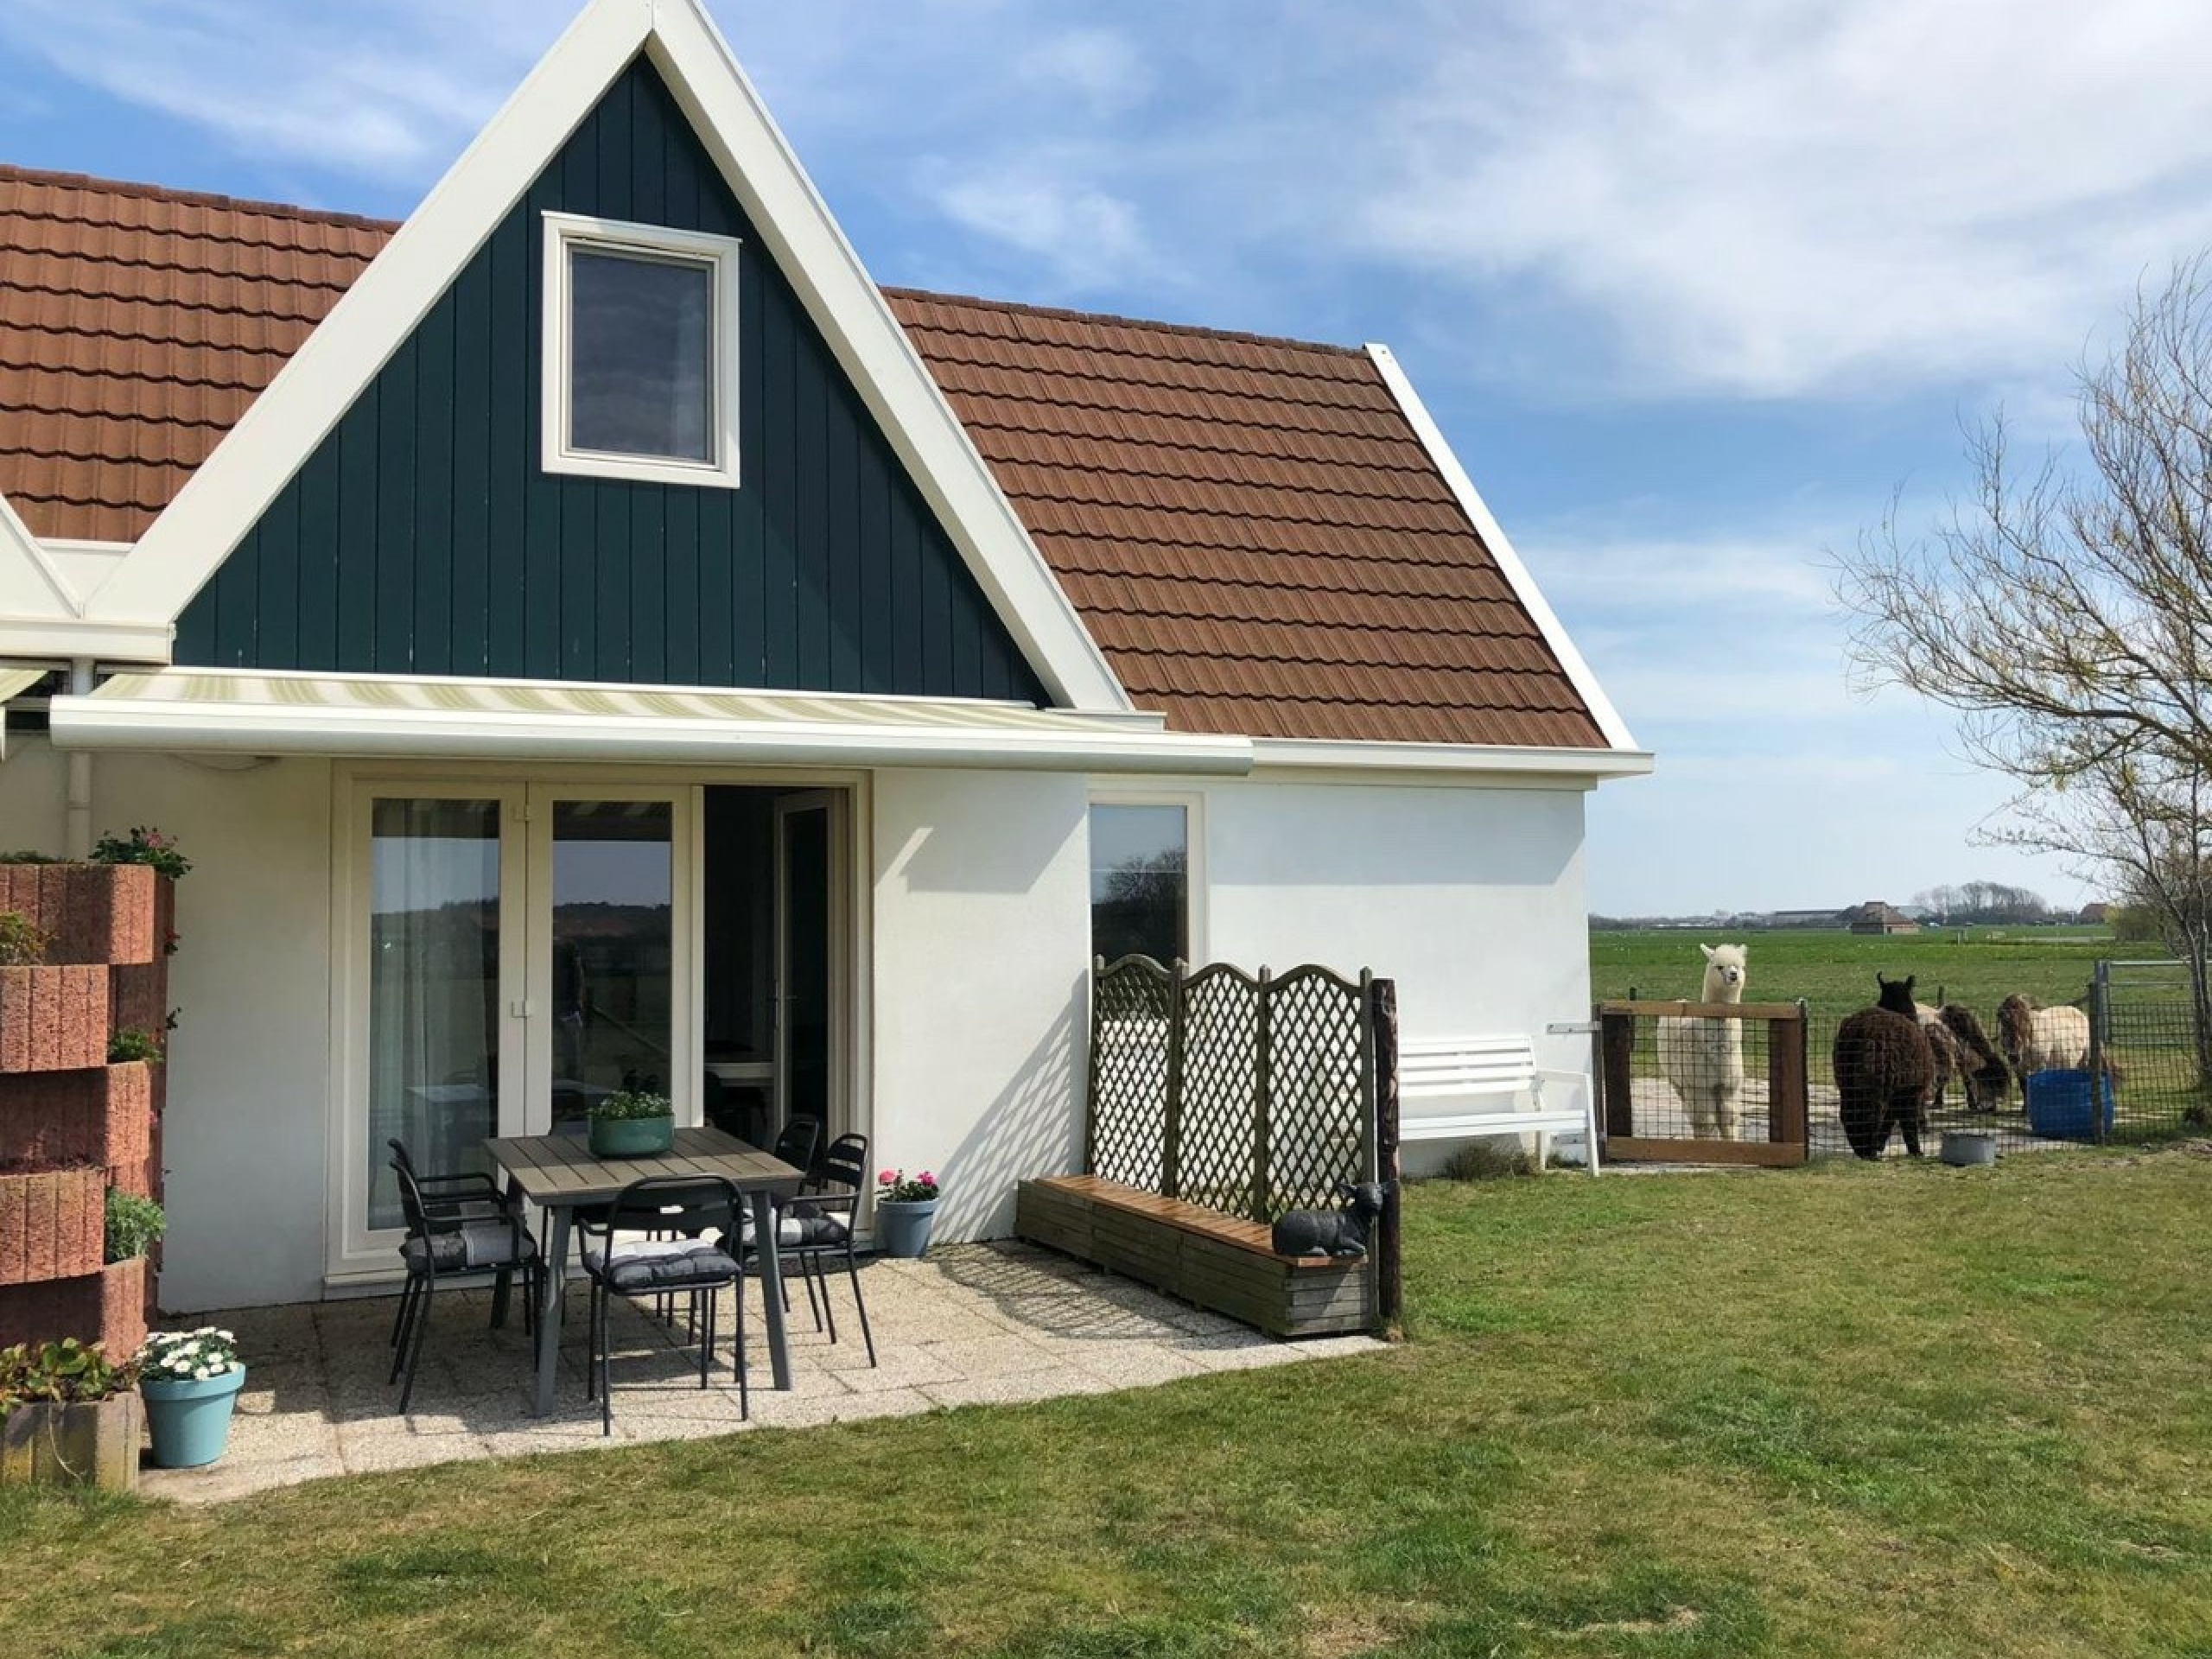 Have a great night's sleep at this rural cottage near forest De Dennen